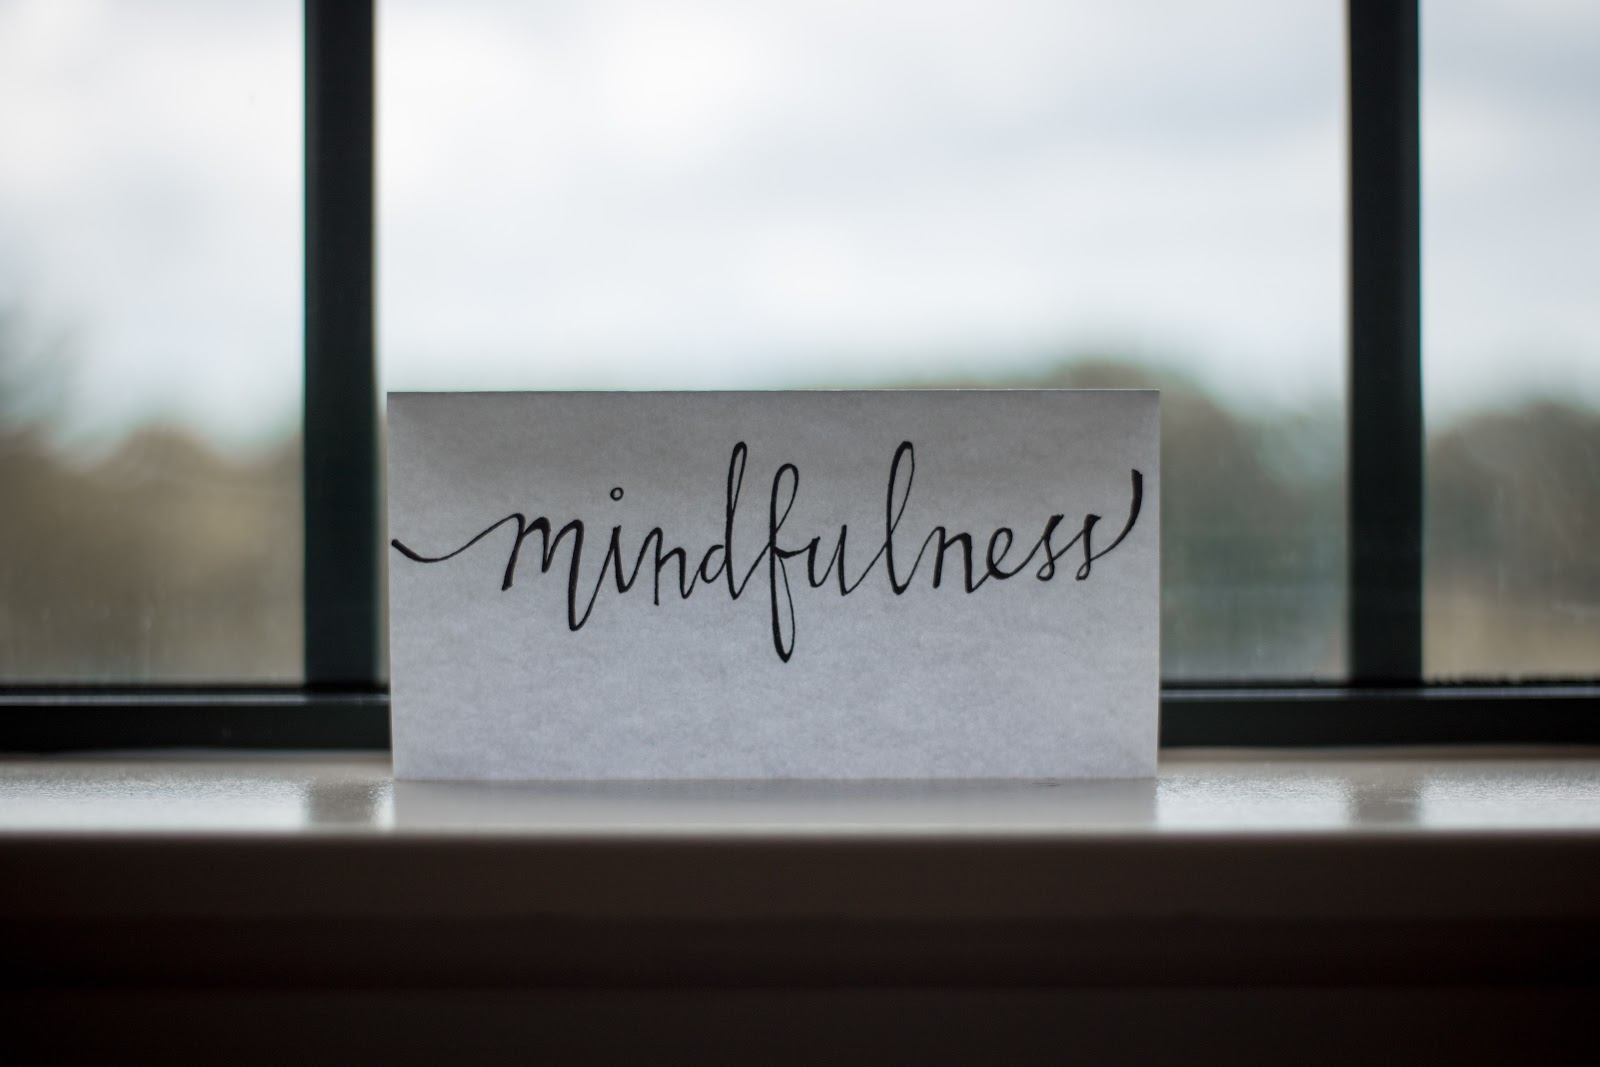 Mindfulness courses (A guide)